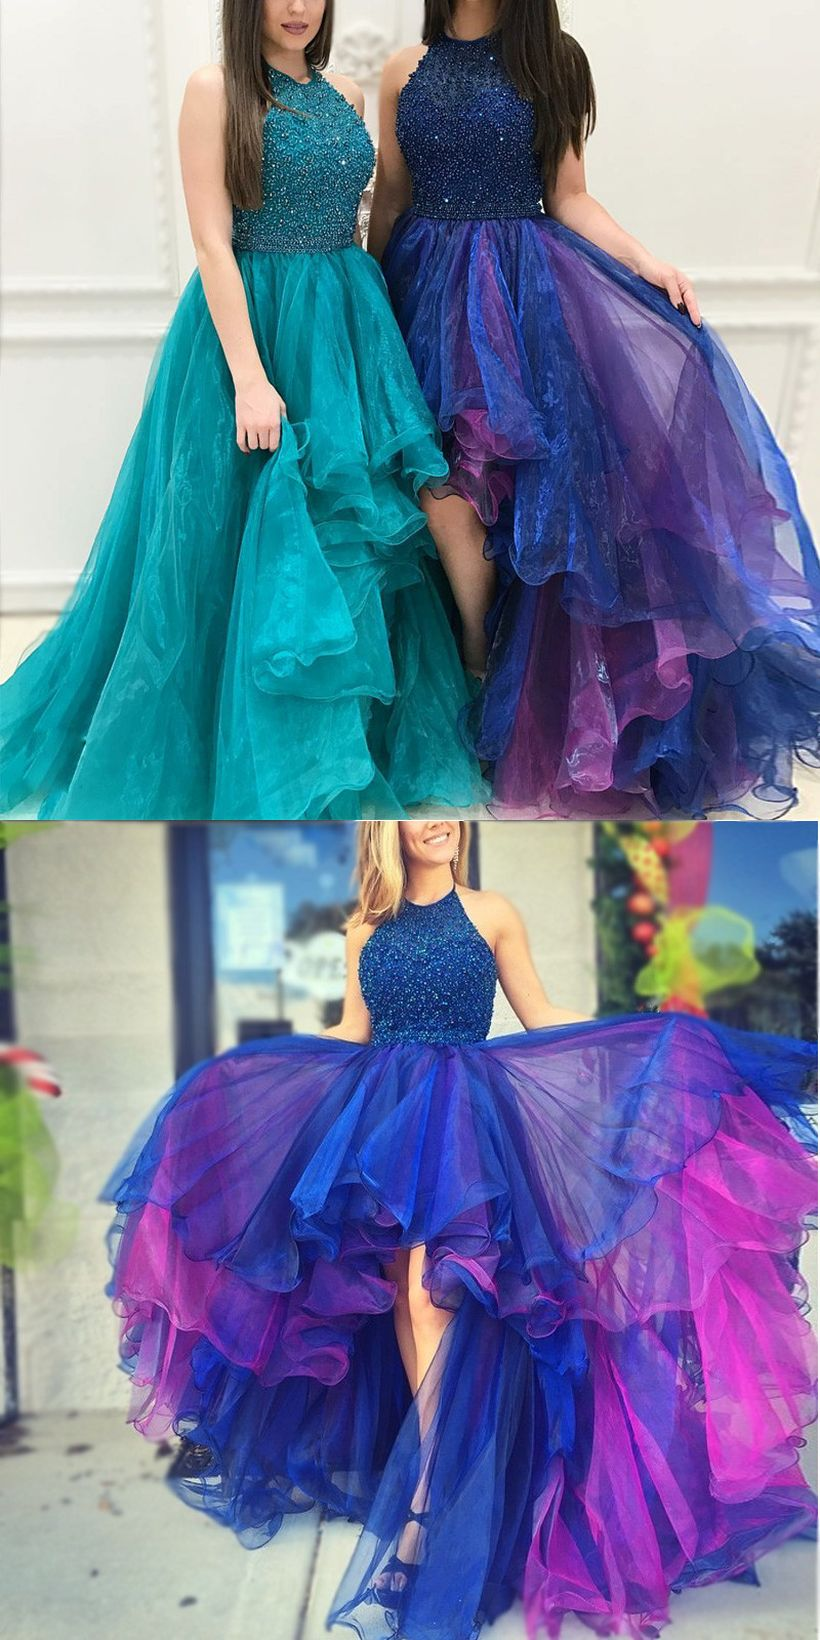 Gorgeous prom dresses for teens ideas 2017 98